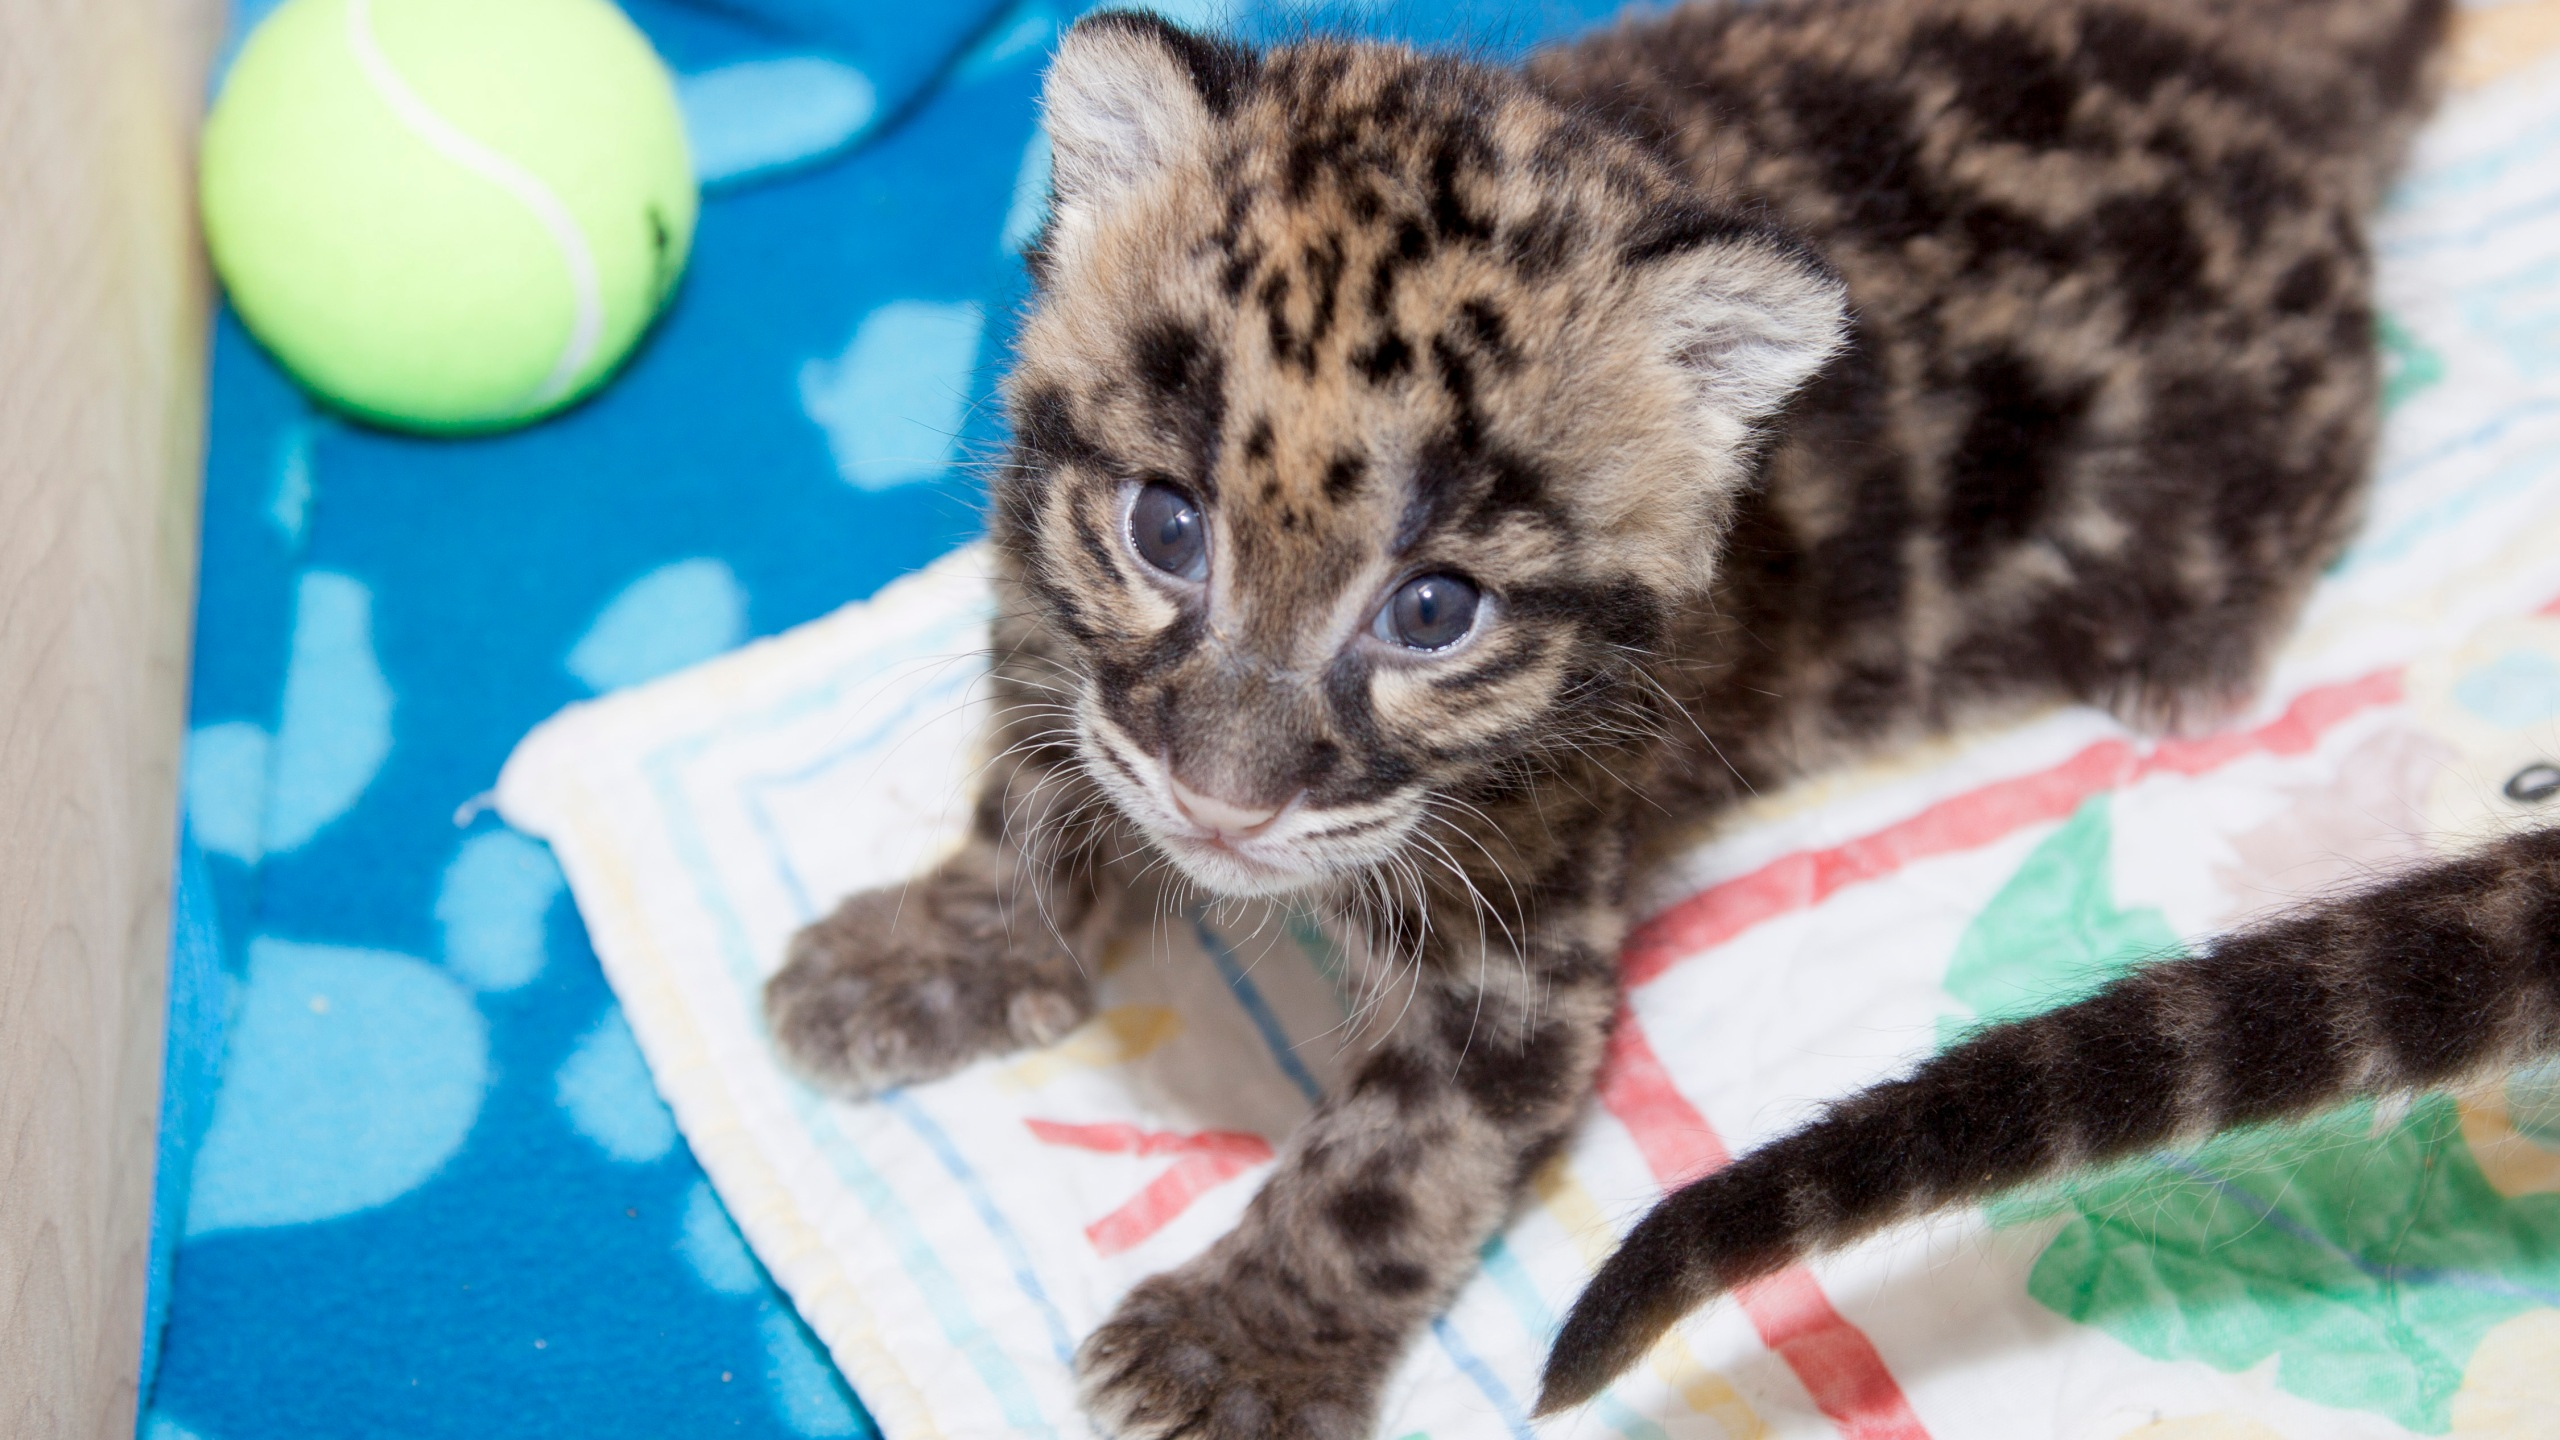 Pi and Rhu, Denver Zoo's clouded leopard cub can be viewed by public. (Photo: Denver Zoo)